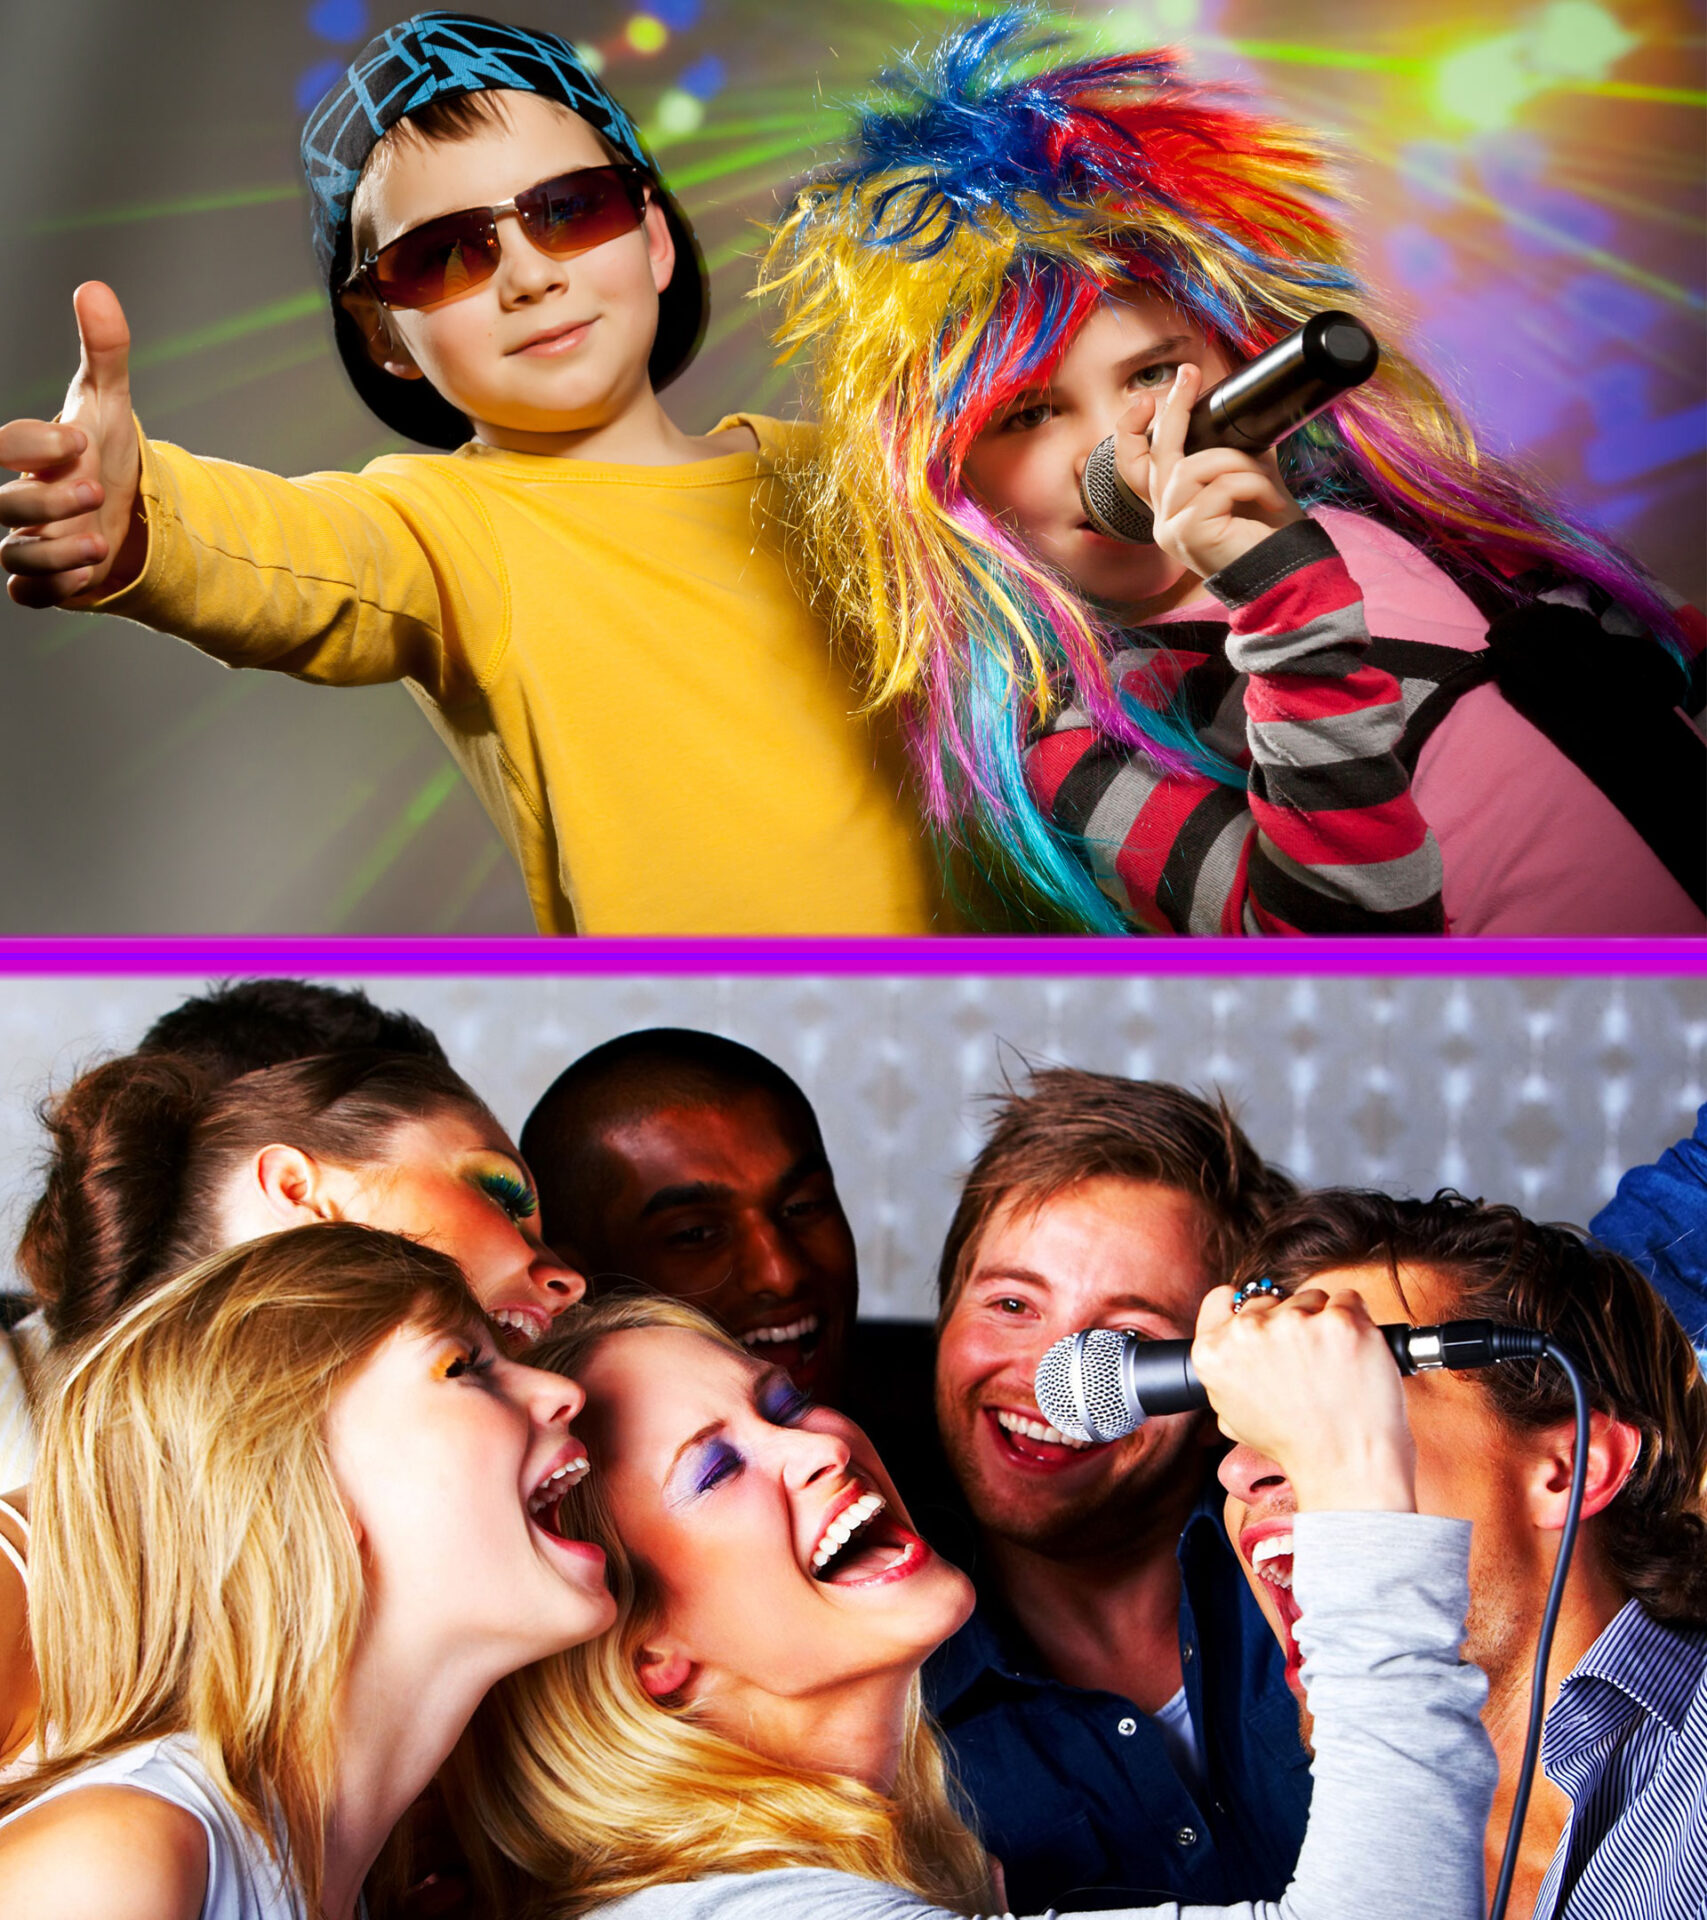 FunDimension is the ultimate birthday party destination Wynwood Florida